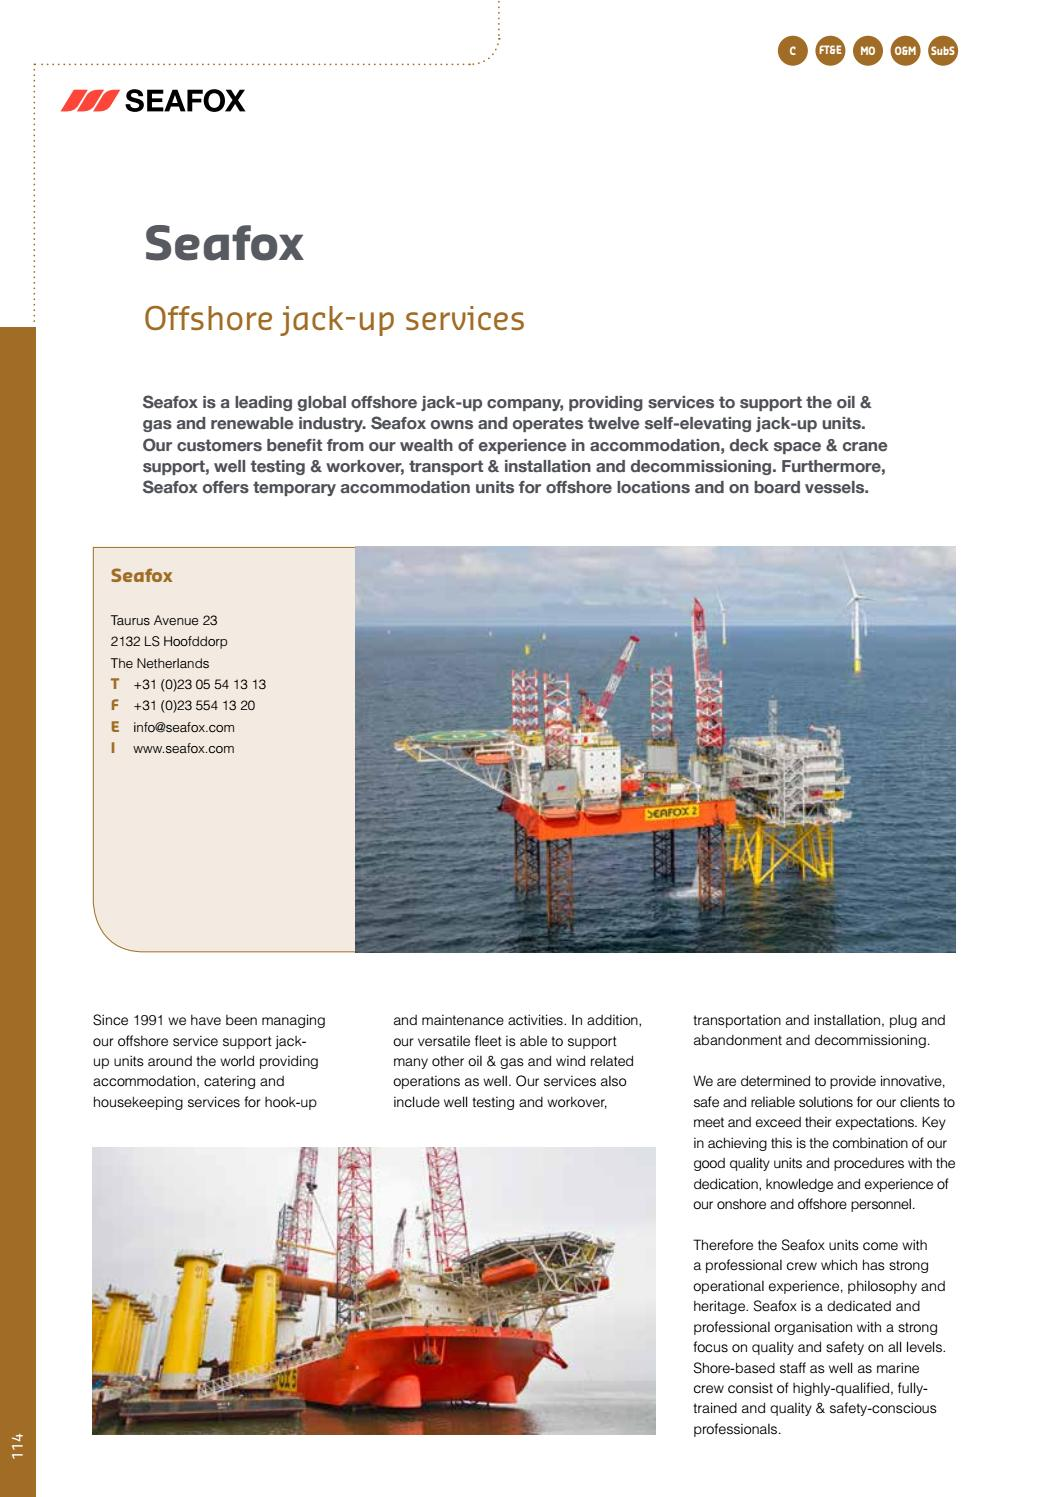 Offshore hook up activities